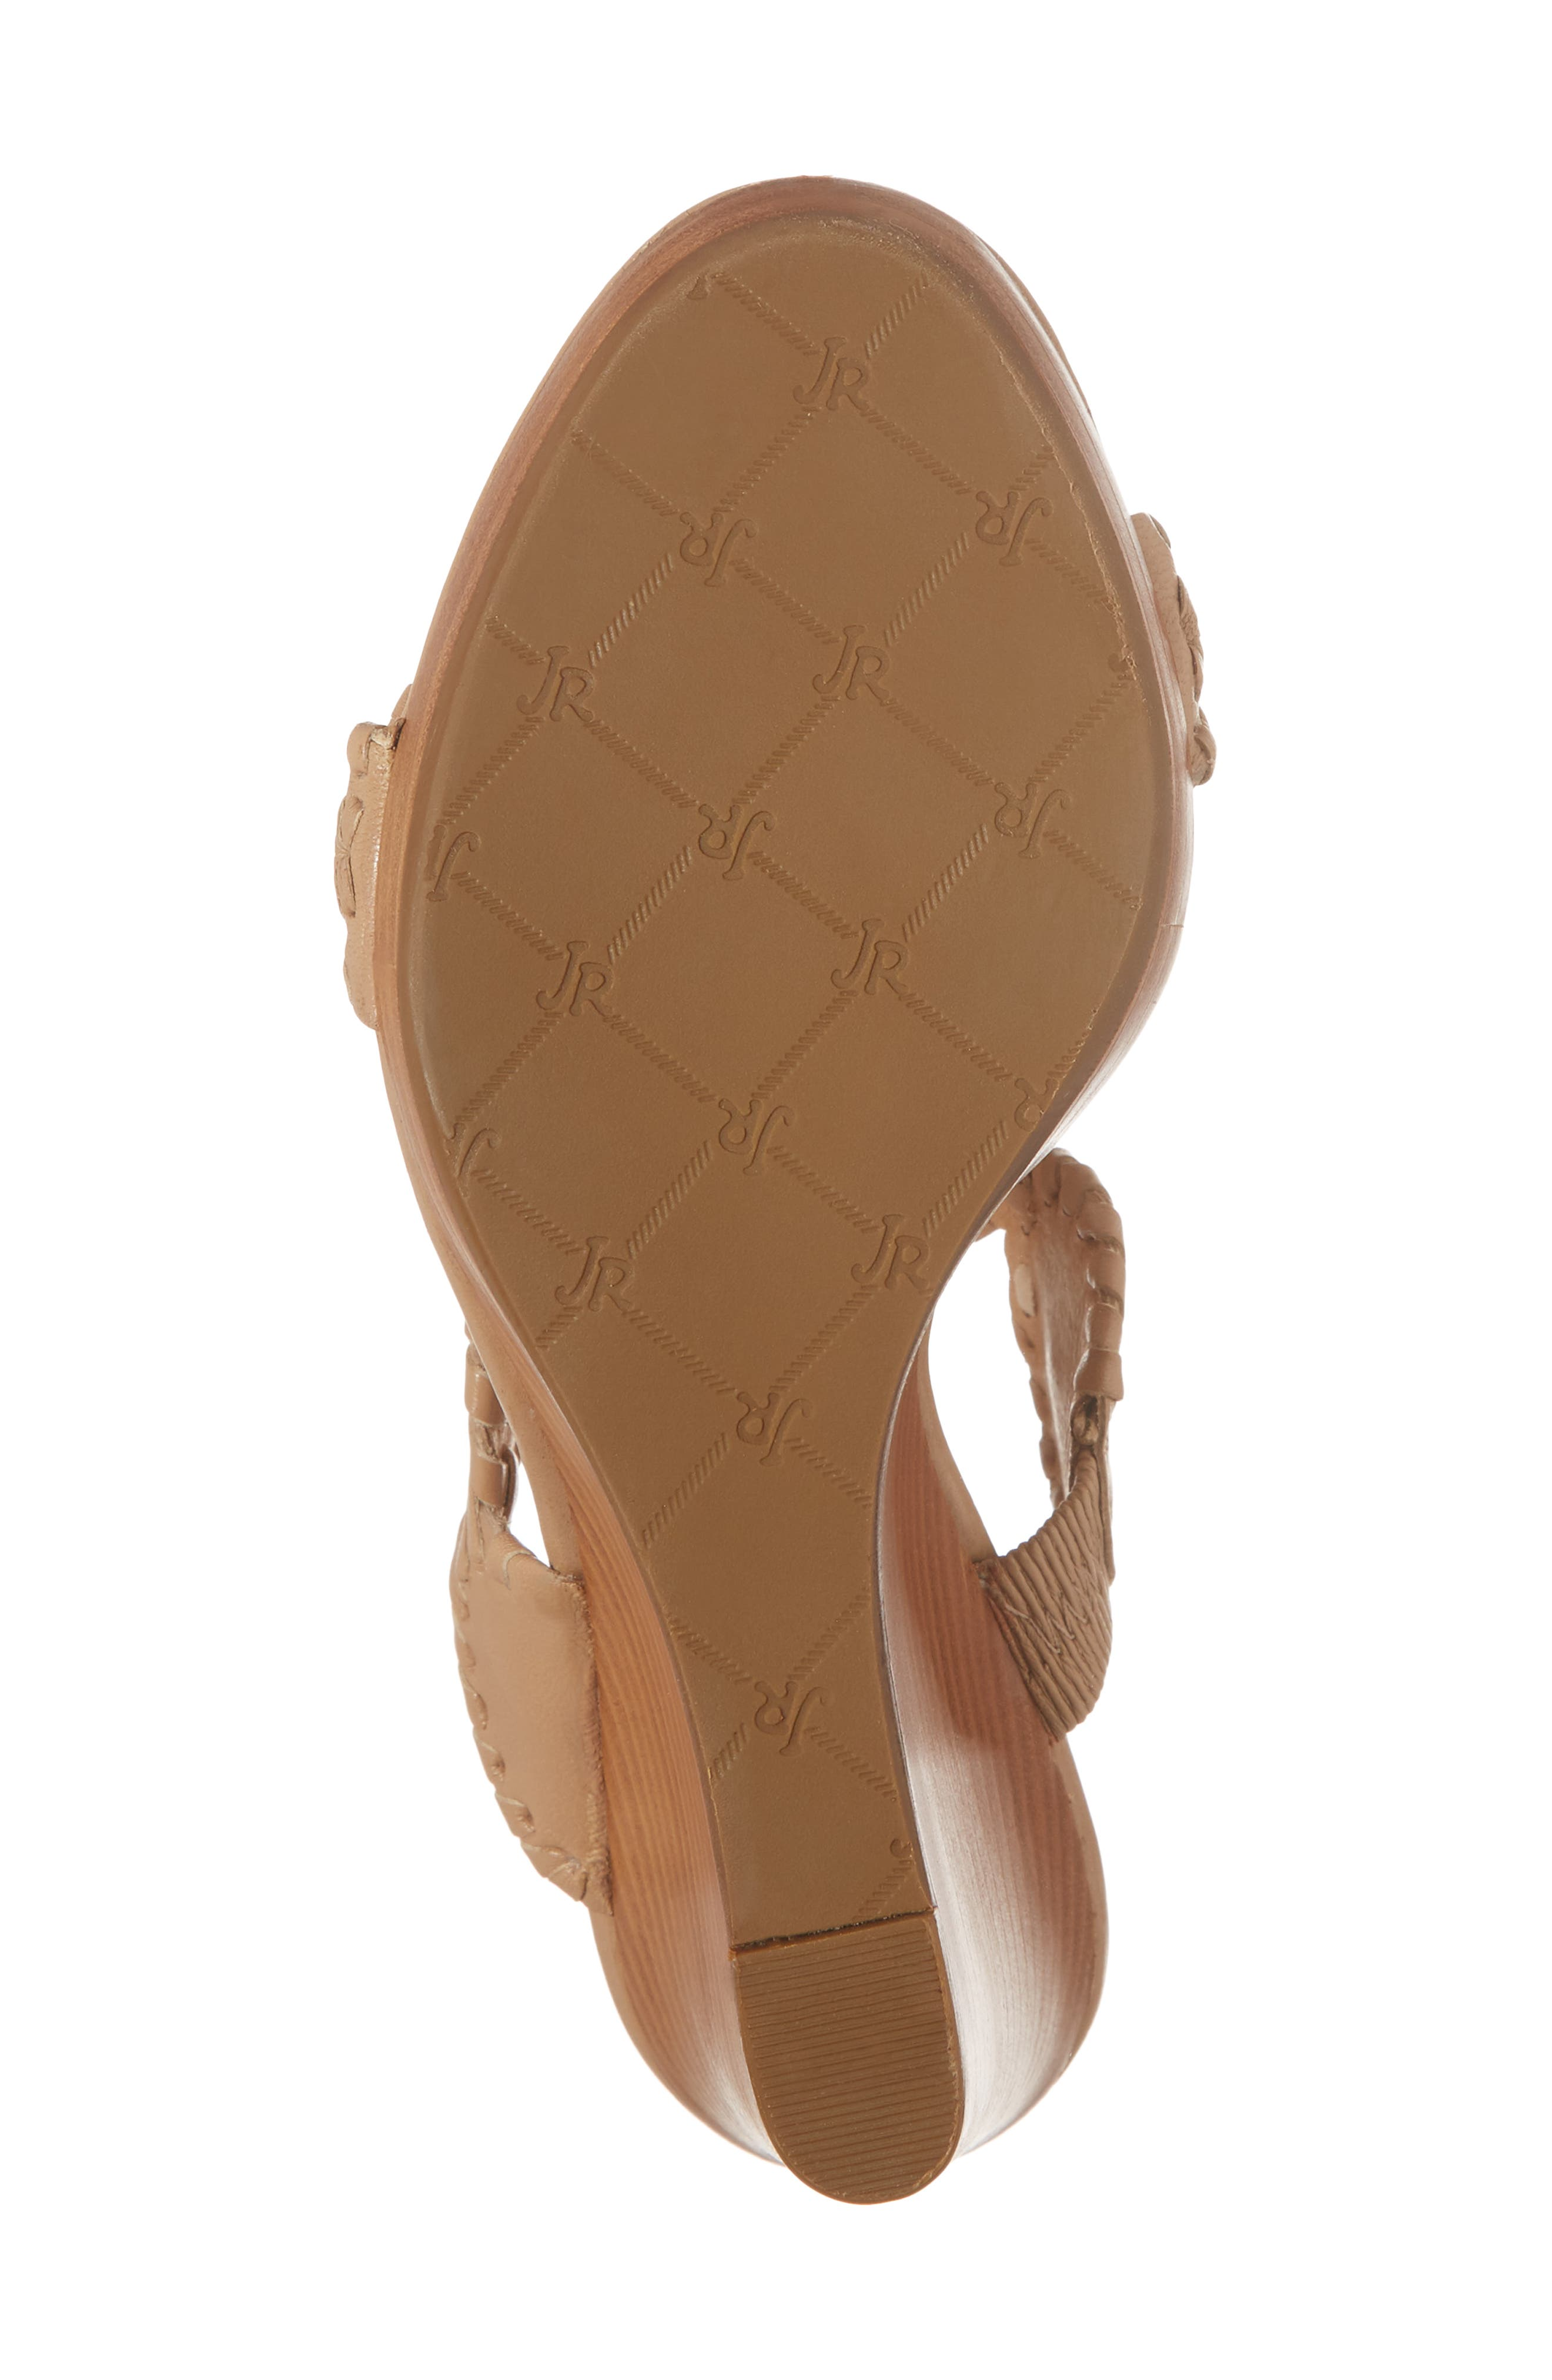 JACK ROGERS,                             'Luccia' Sandal,                             Alternate thumbnail 6, color,                             250